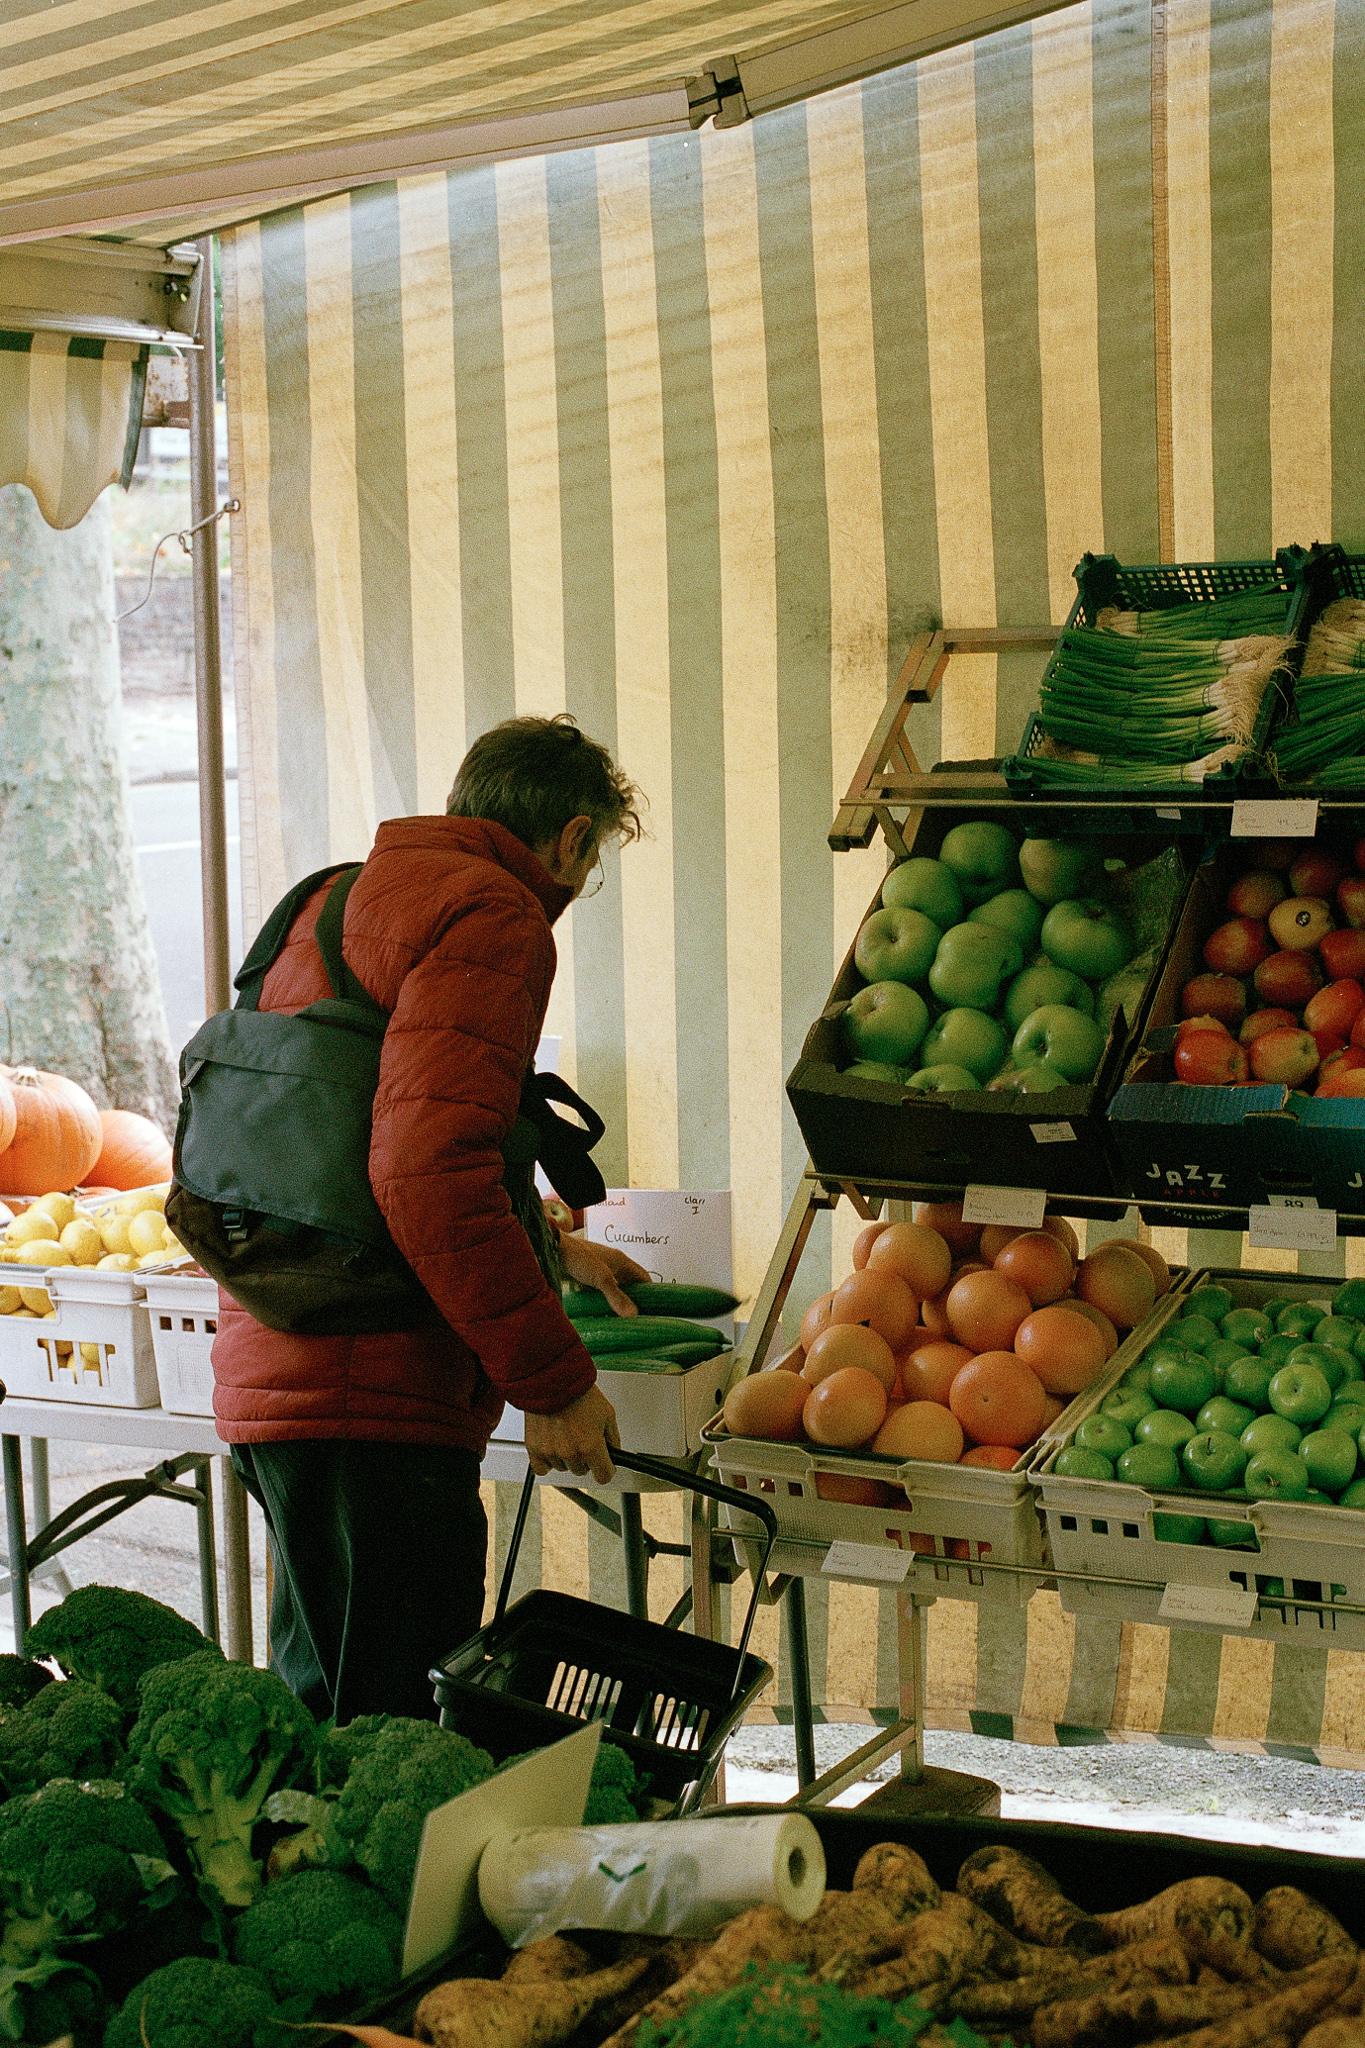 fruit and veg shop with a man picking up produce